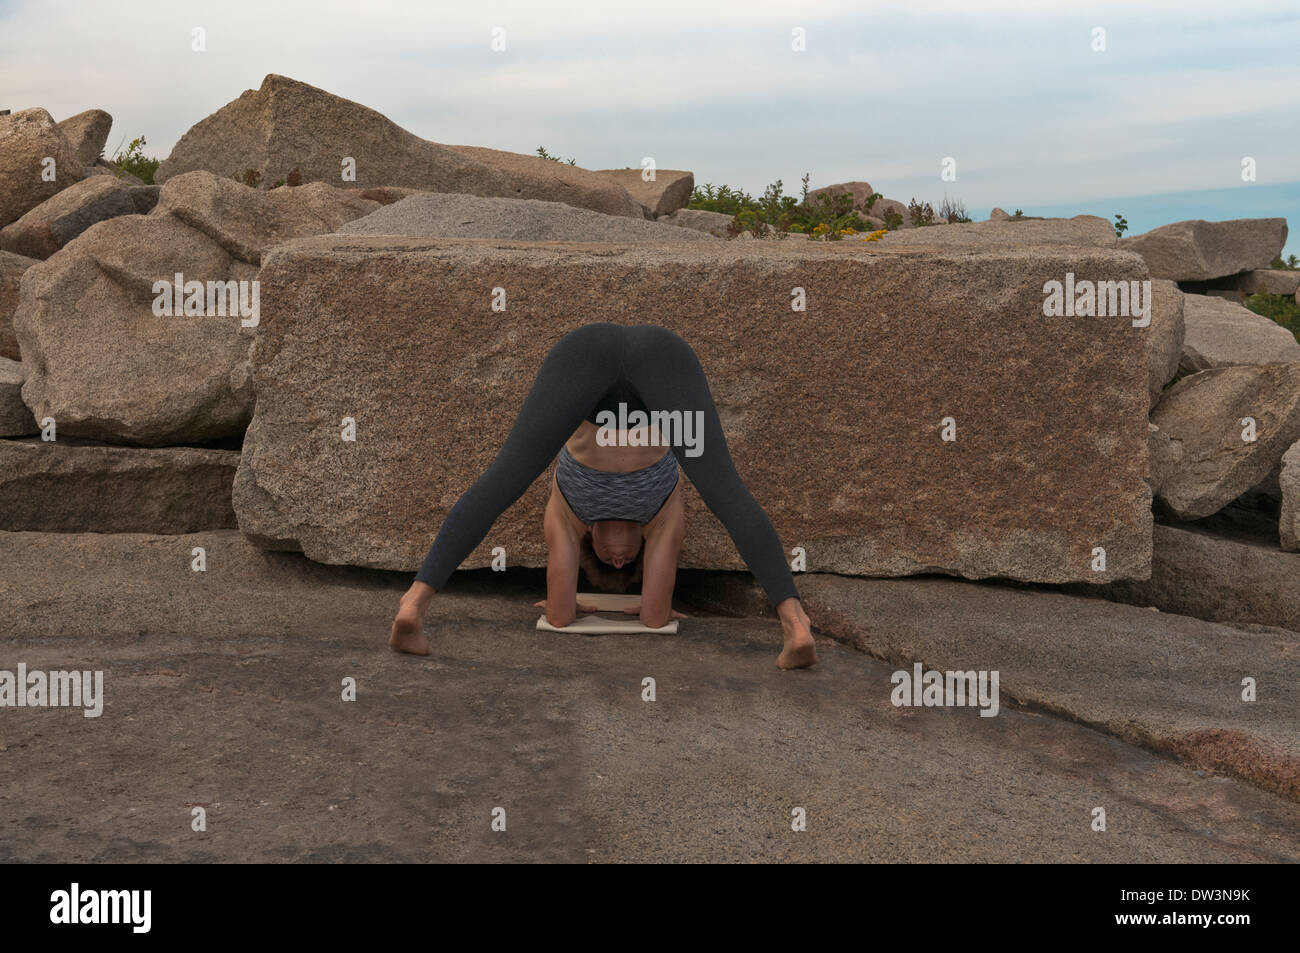 Iyengar Yoga Instructor Demonstrates an asana. - Stock Image